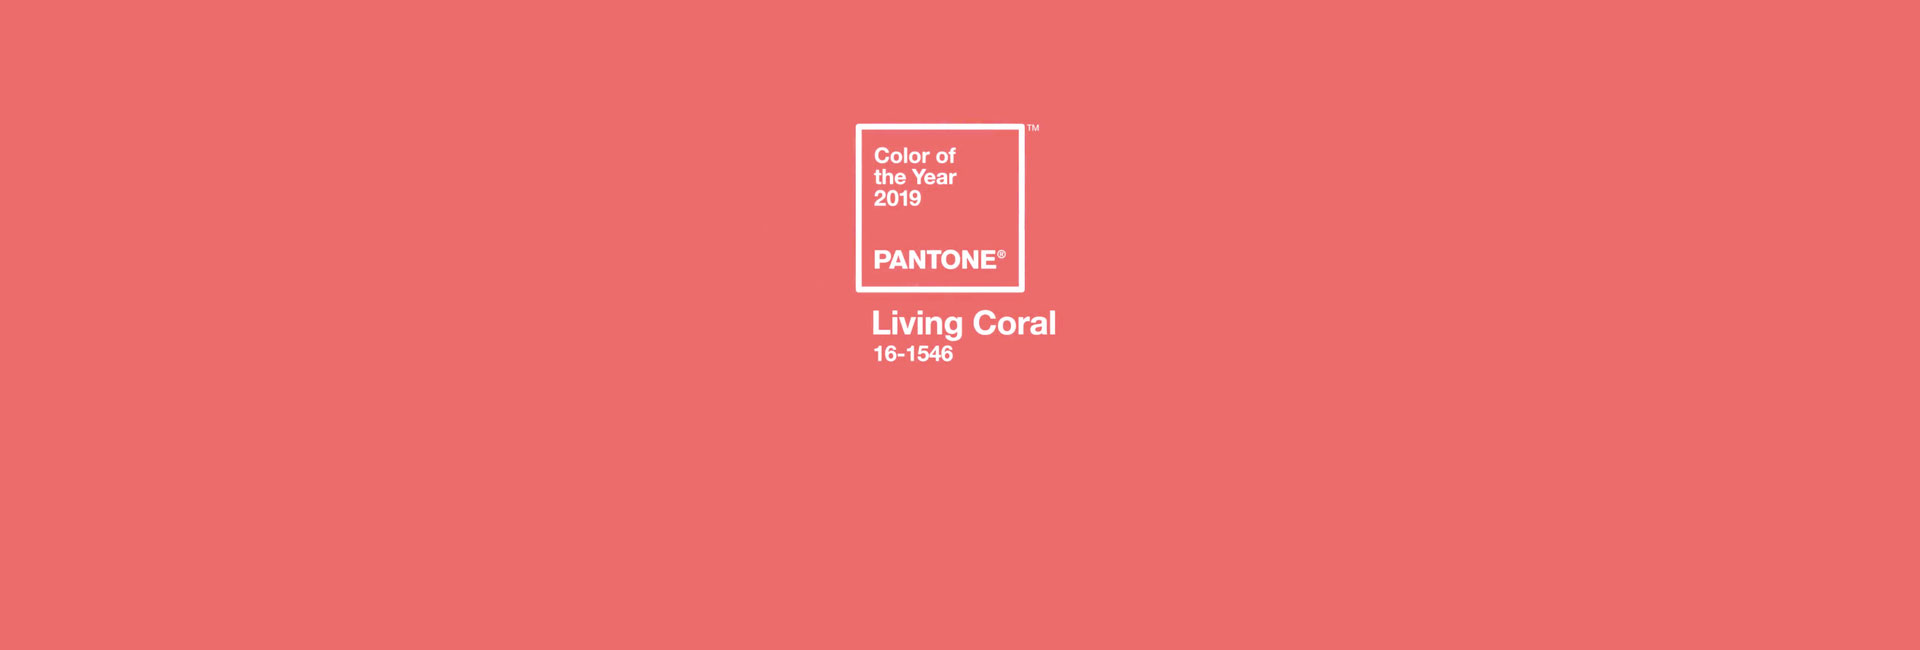 Recently announced  as the color of the year 2019, the  Pantone Living Coral 16-1546  promises to influence (and much!) The trends of the next twelve months, be it fashion, design and, of course, beauty.